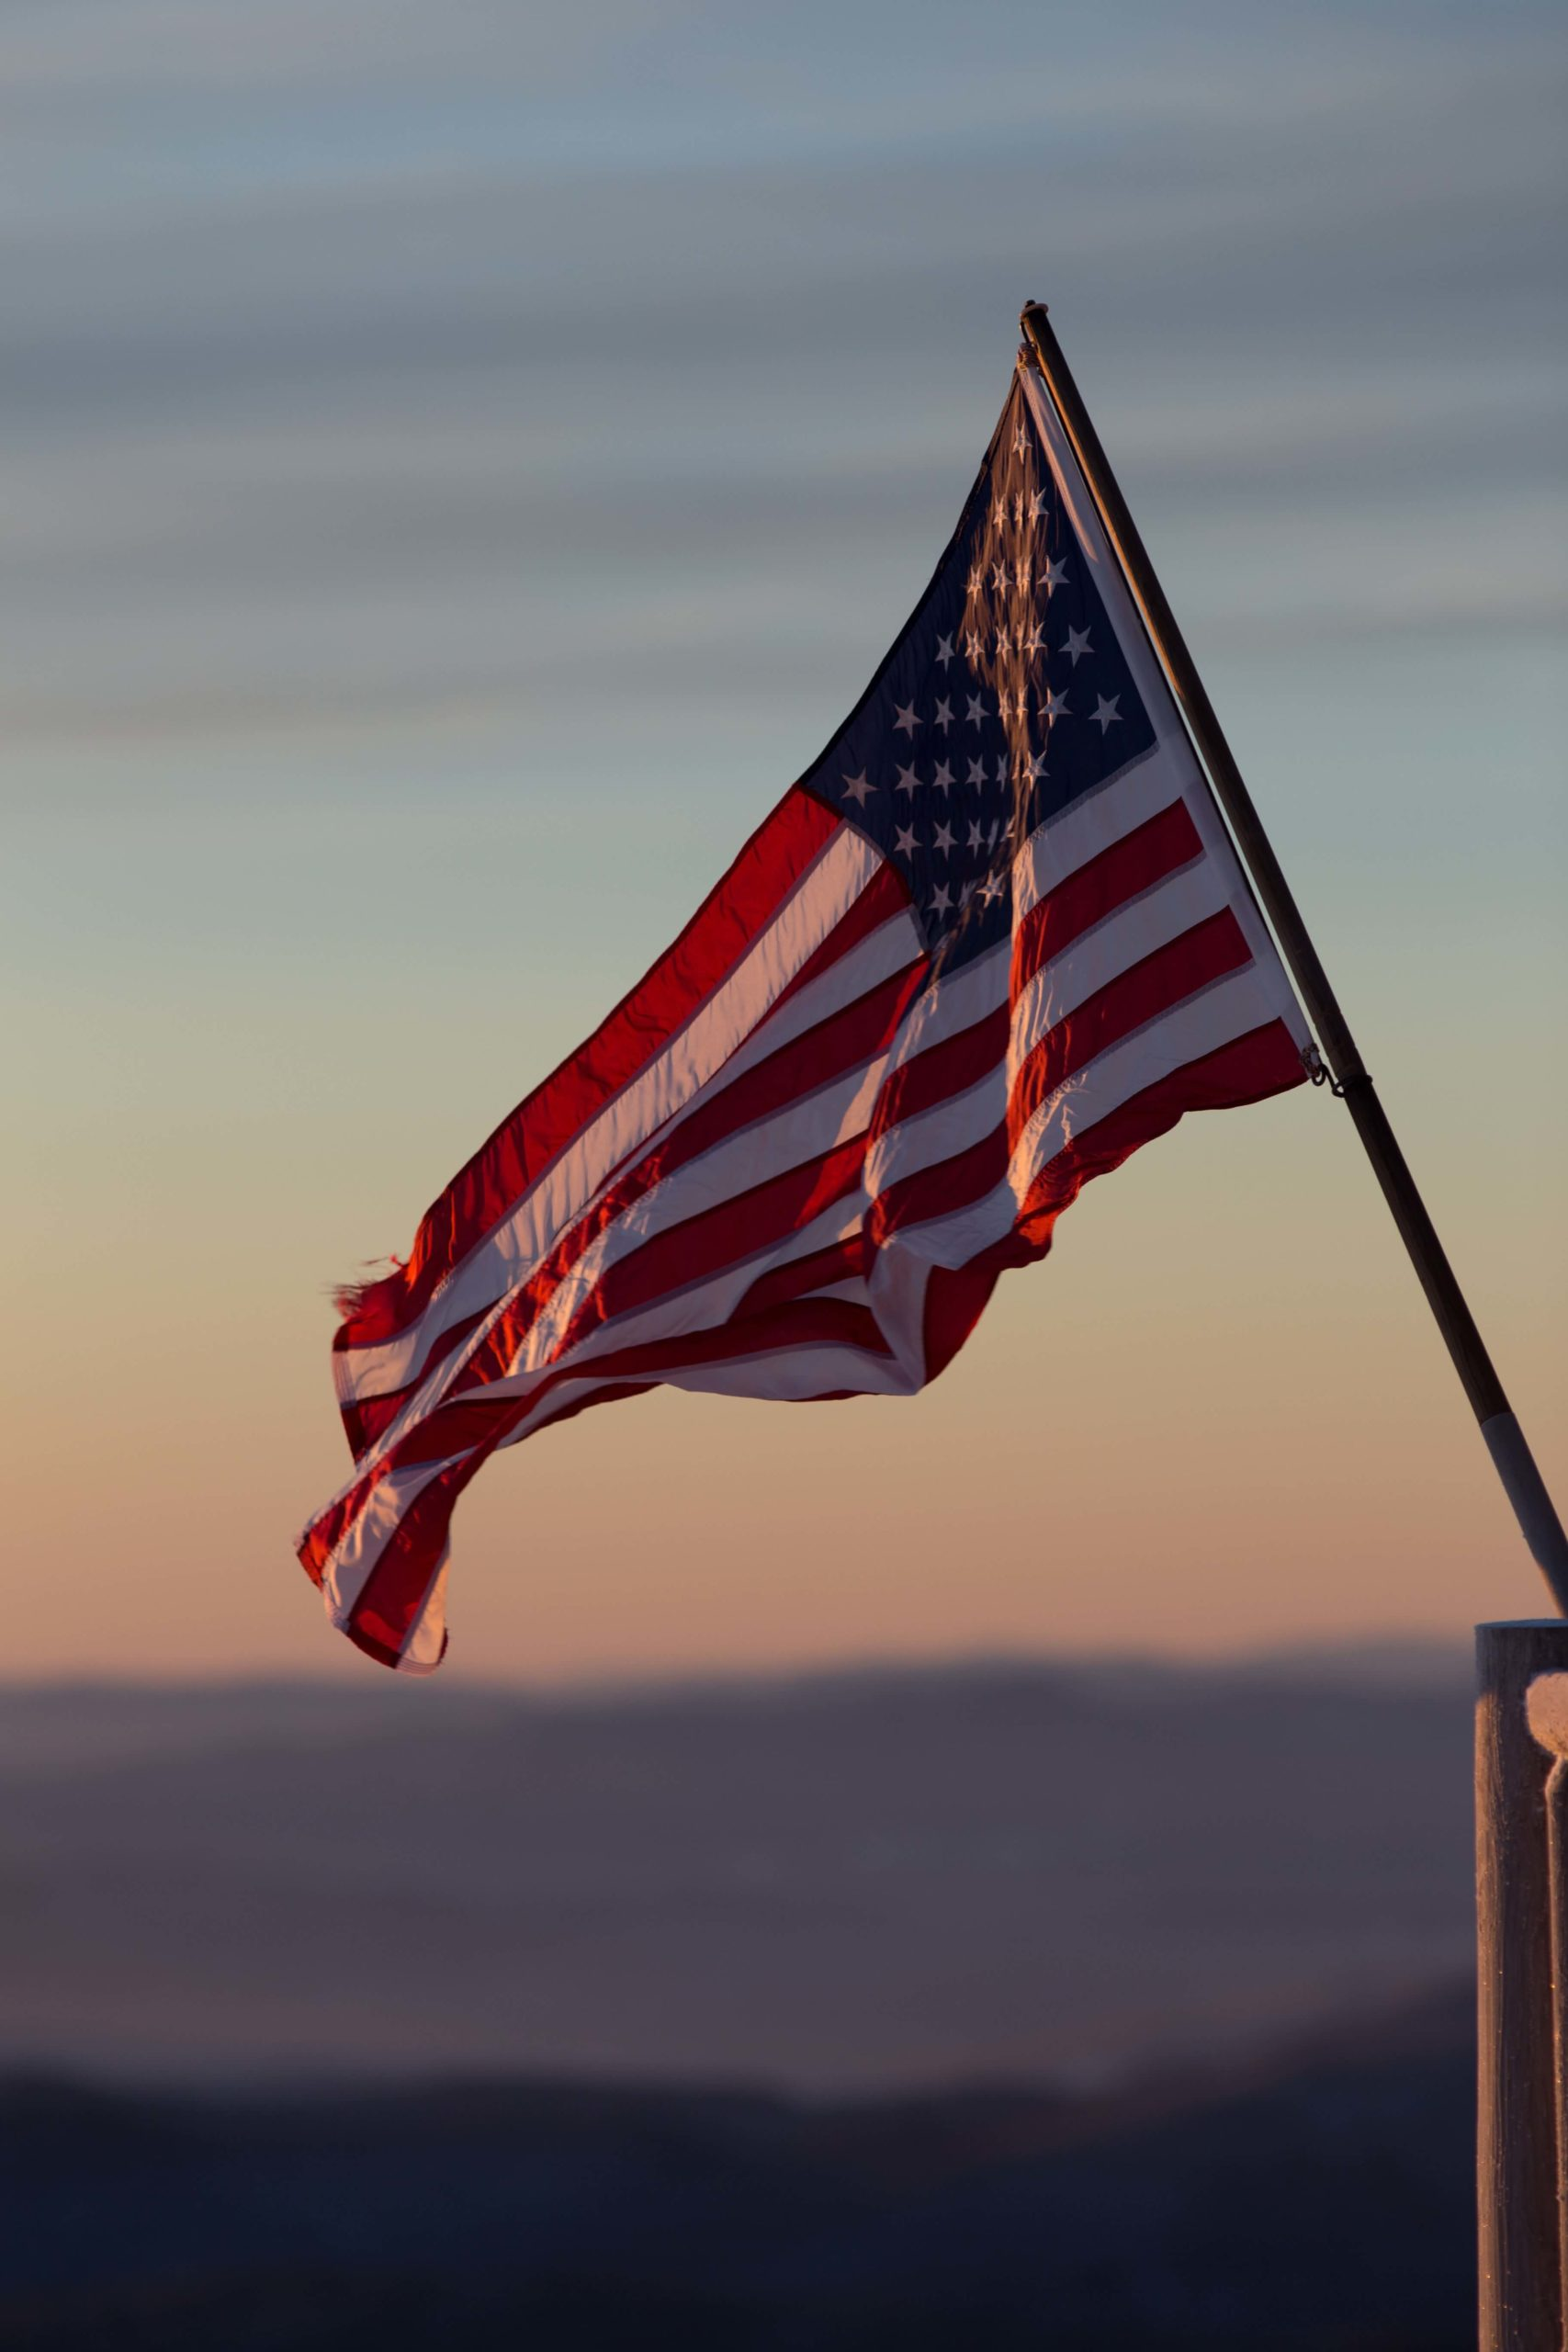 An American flag on a pole rippling in a light breeze in front of a sunset.